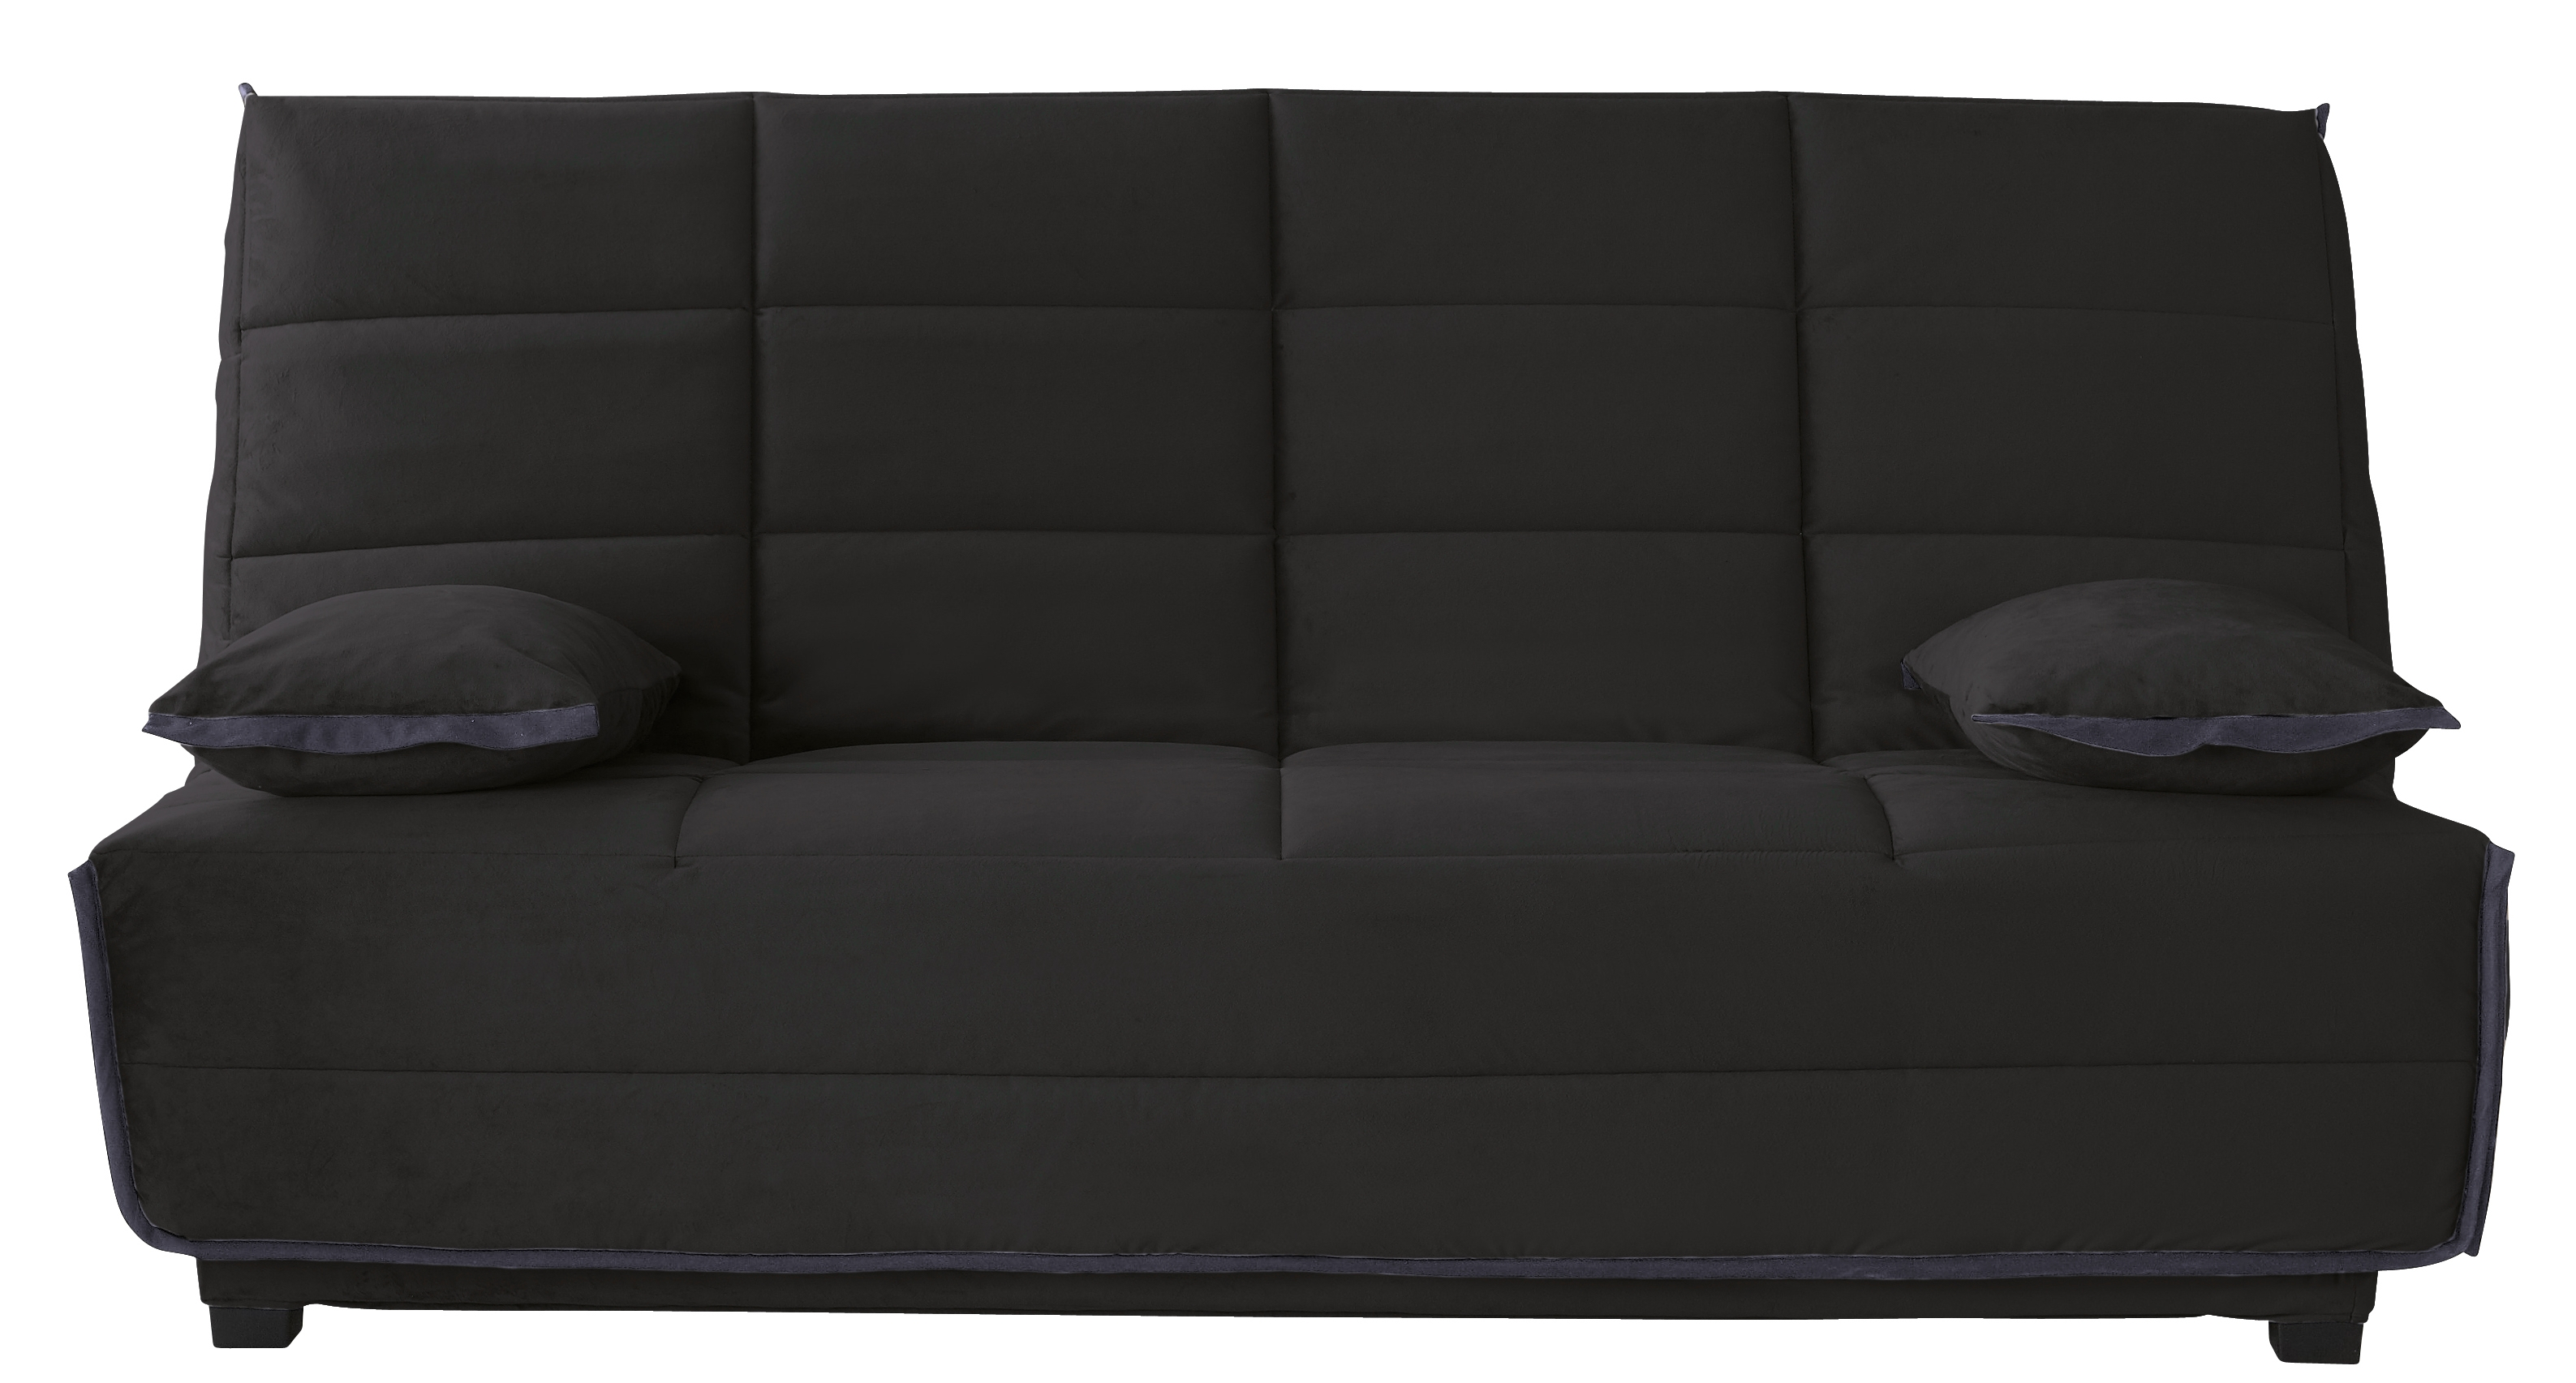 clic clac noir matelas dunlopillo 13 cm hola. Black Bedroom Furniture Sets. Home Design Ideas